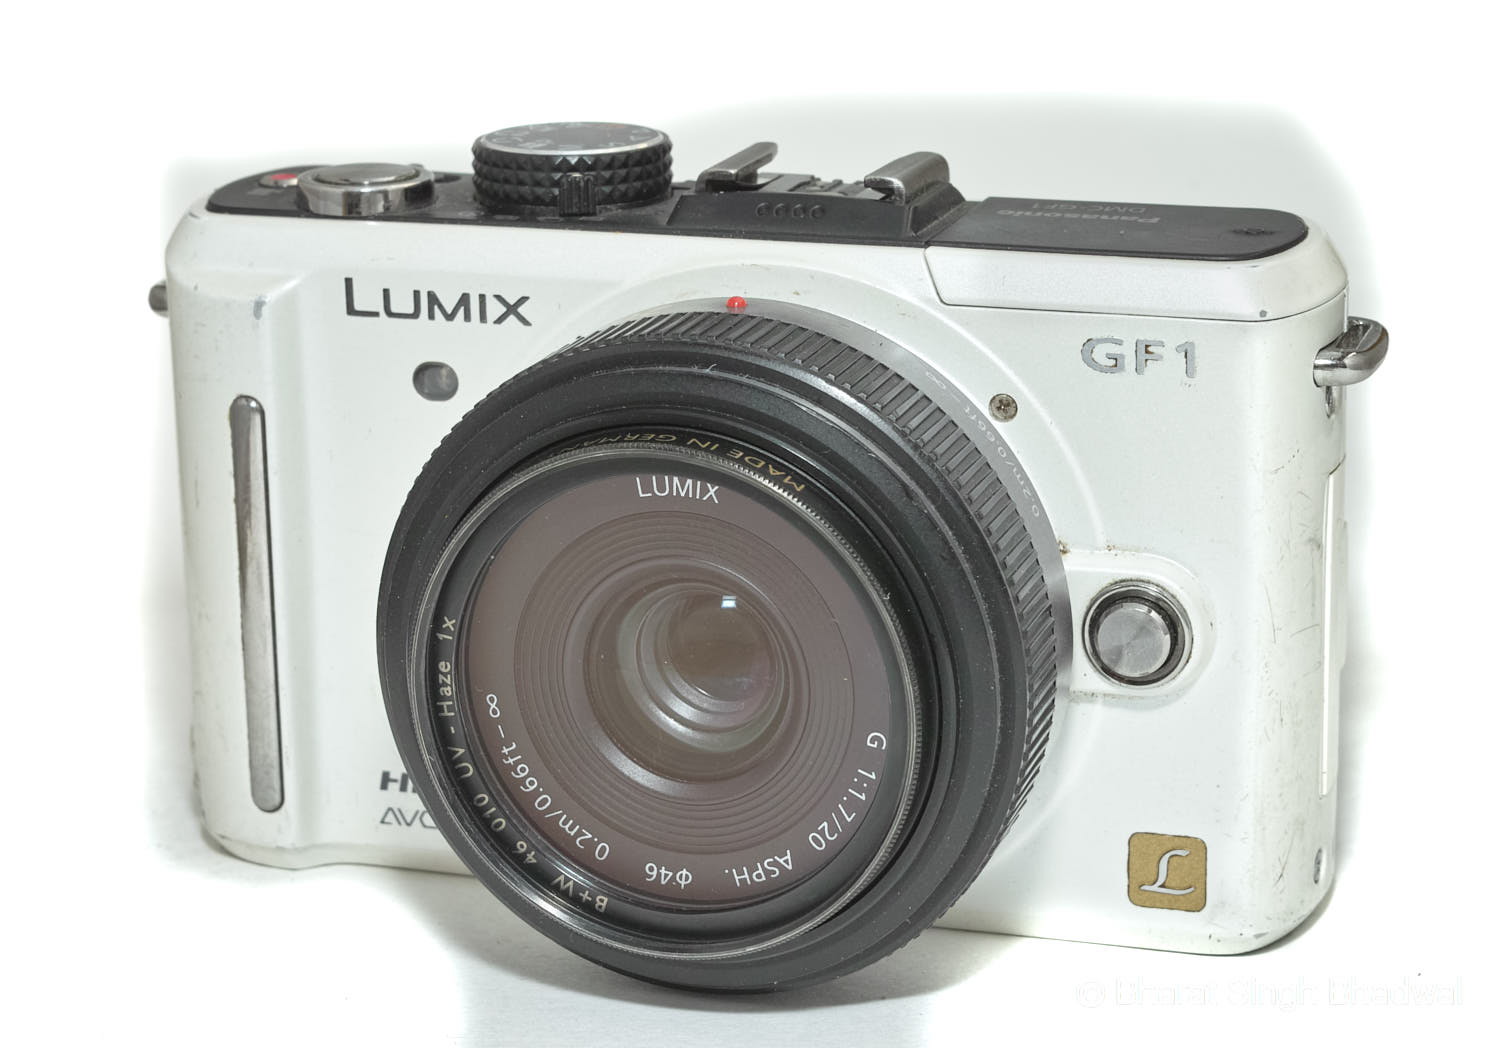 Our Panasonic GF1 with a broken battery lock door and cracked LCD. Still works perfectly though!